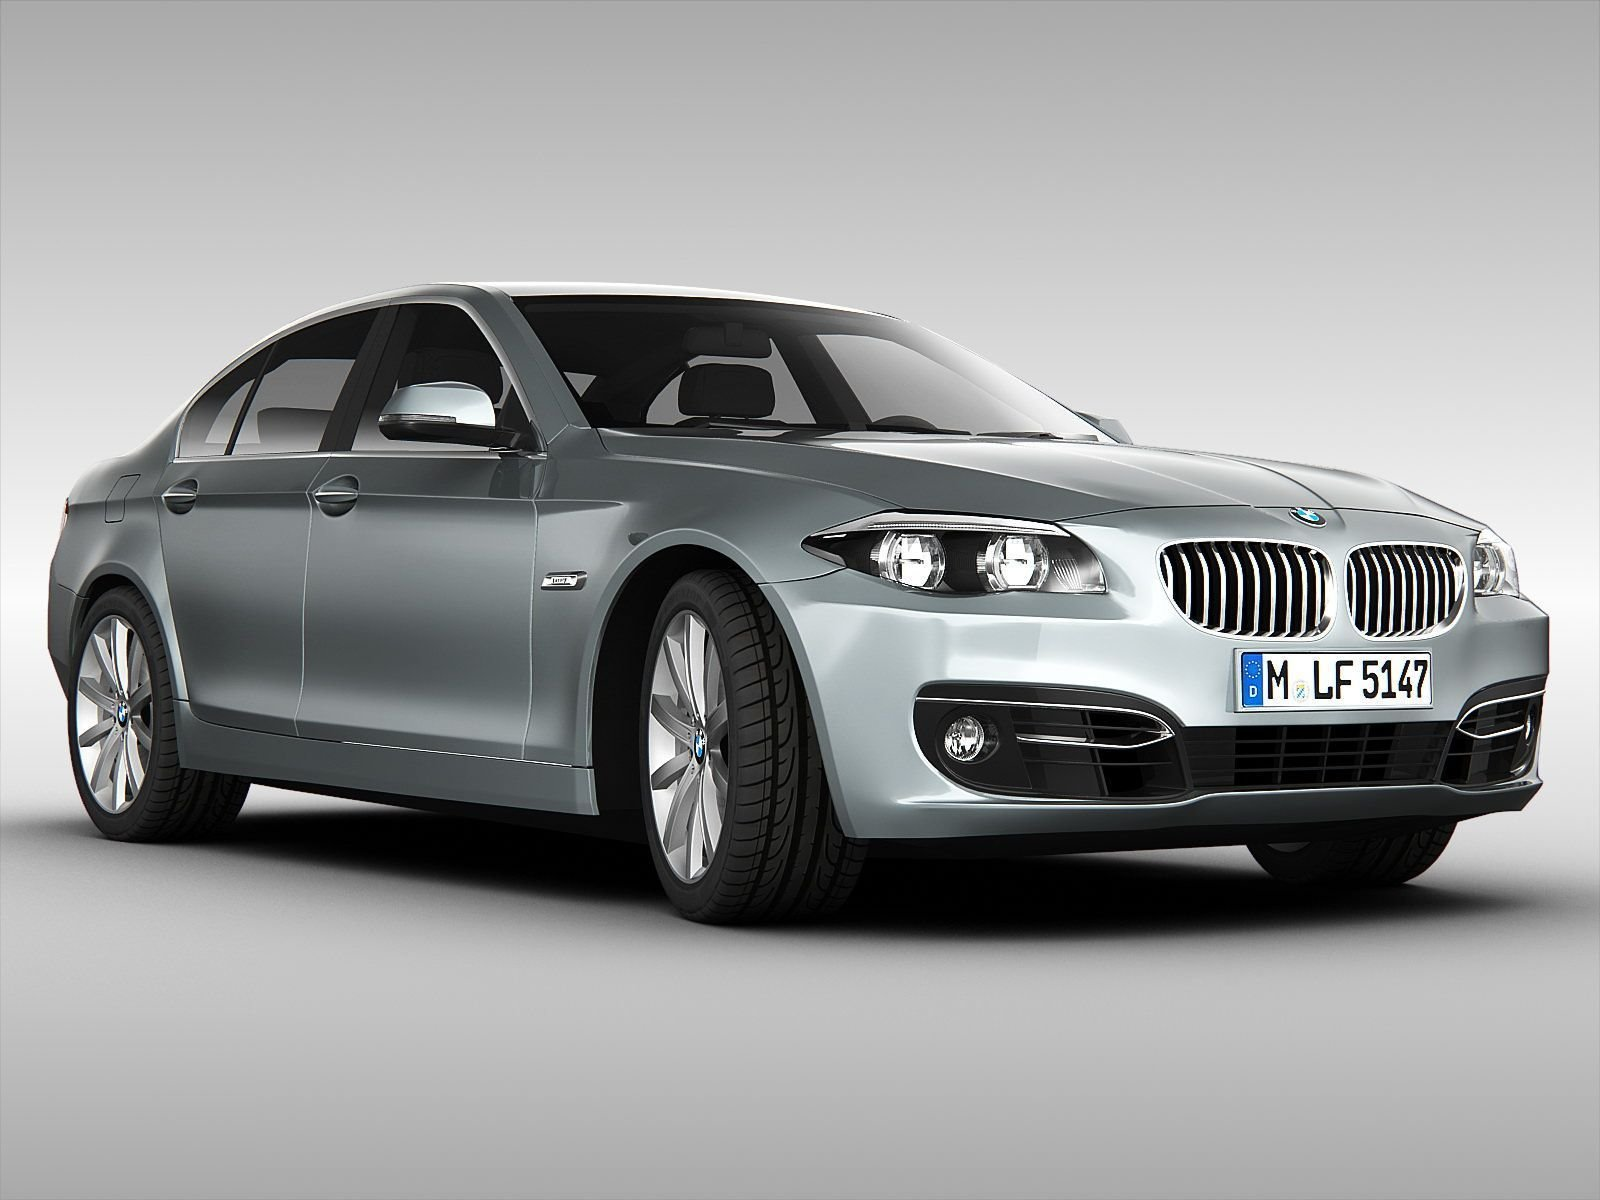 Latest All Bmw Models 9 Free Hd Car Wallpaper Cars Pictures Free Download